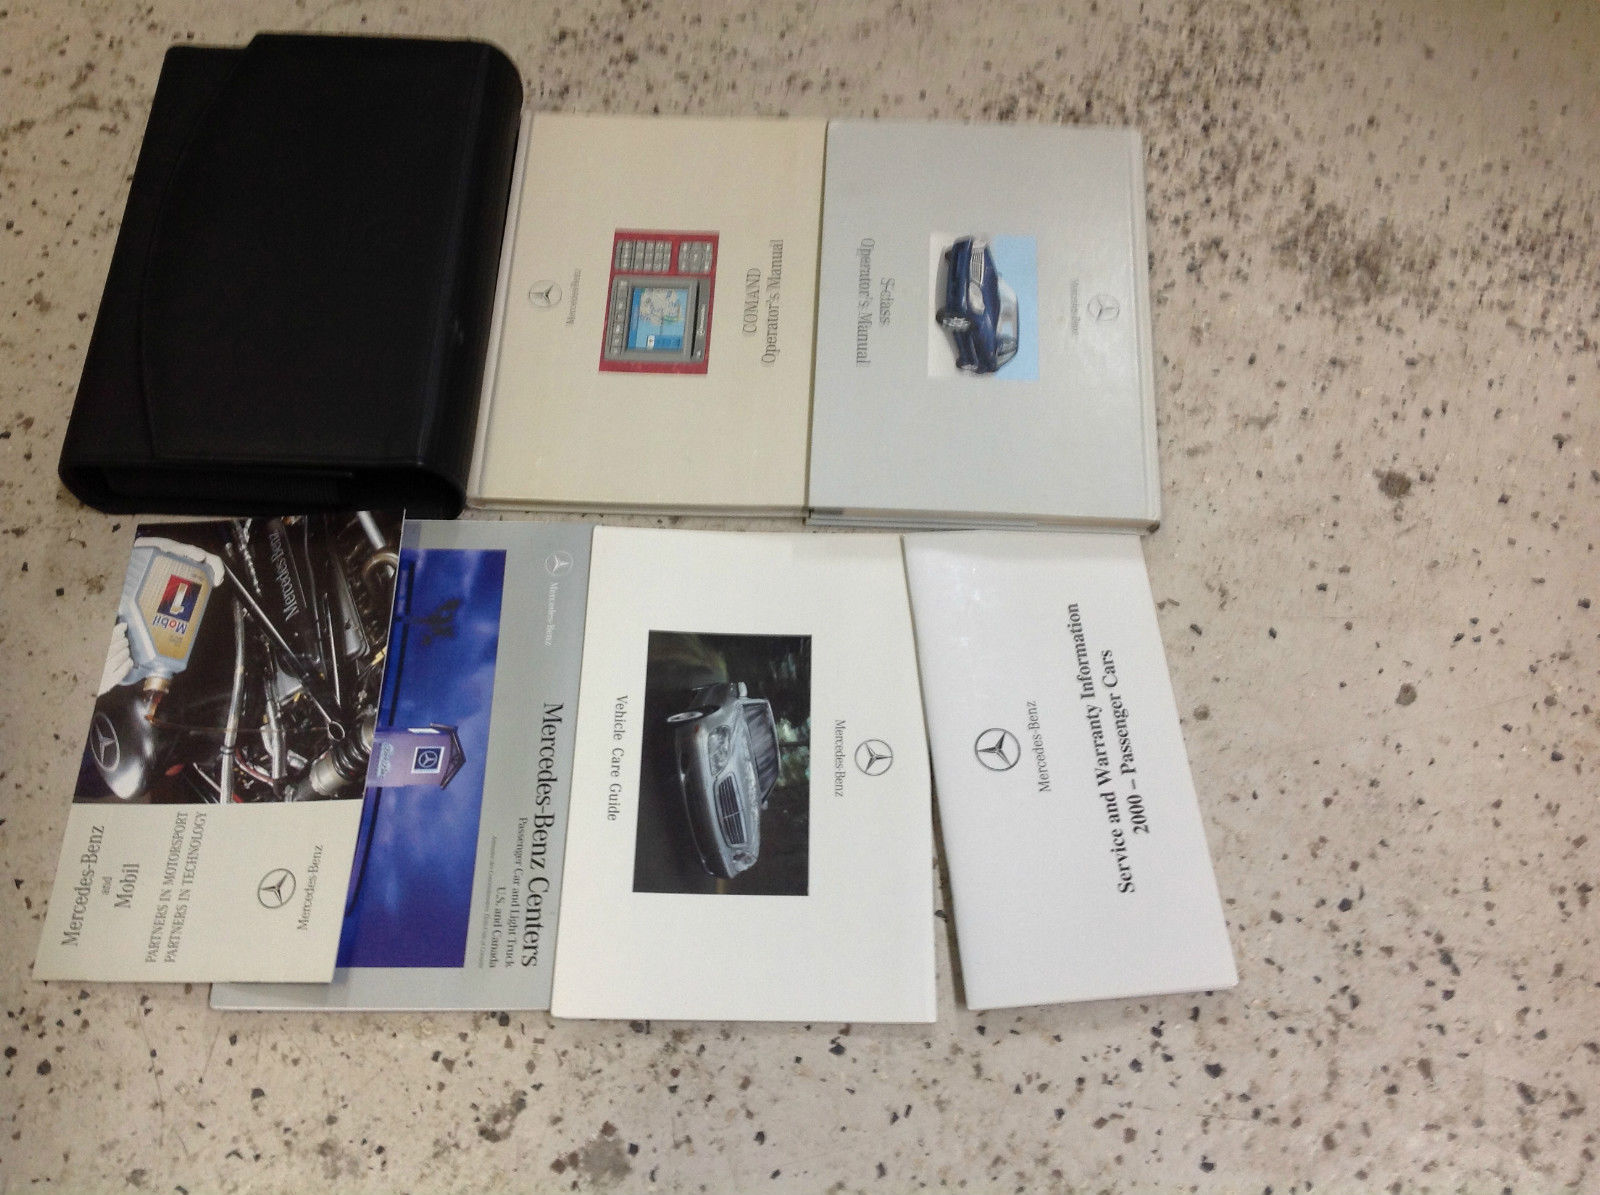 S l1600. S l1600. 2000 MERCEDES S Class S430 S500 S55 S600 Operators OWNERS  Manual ...